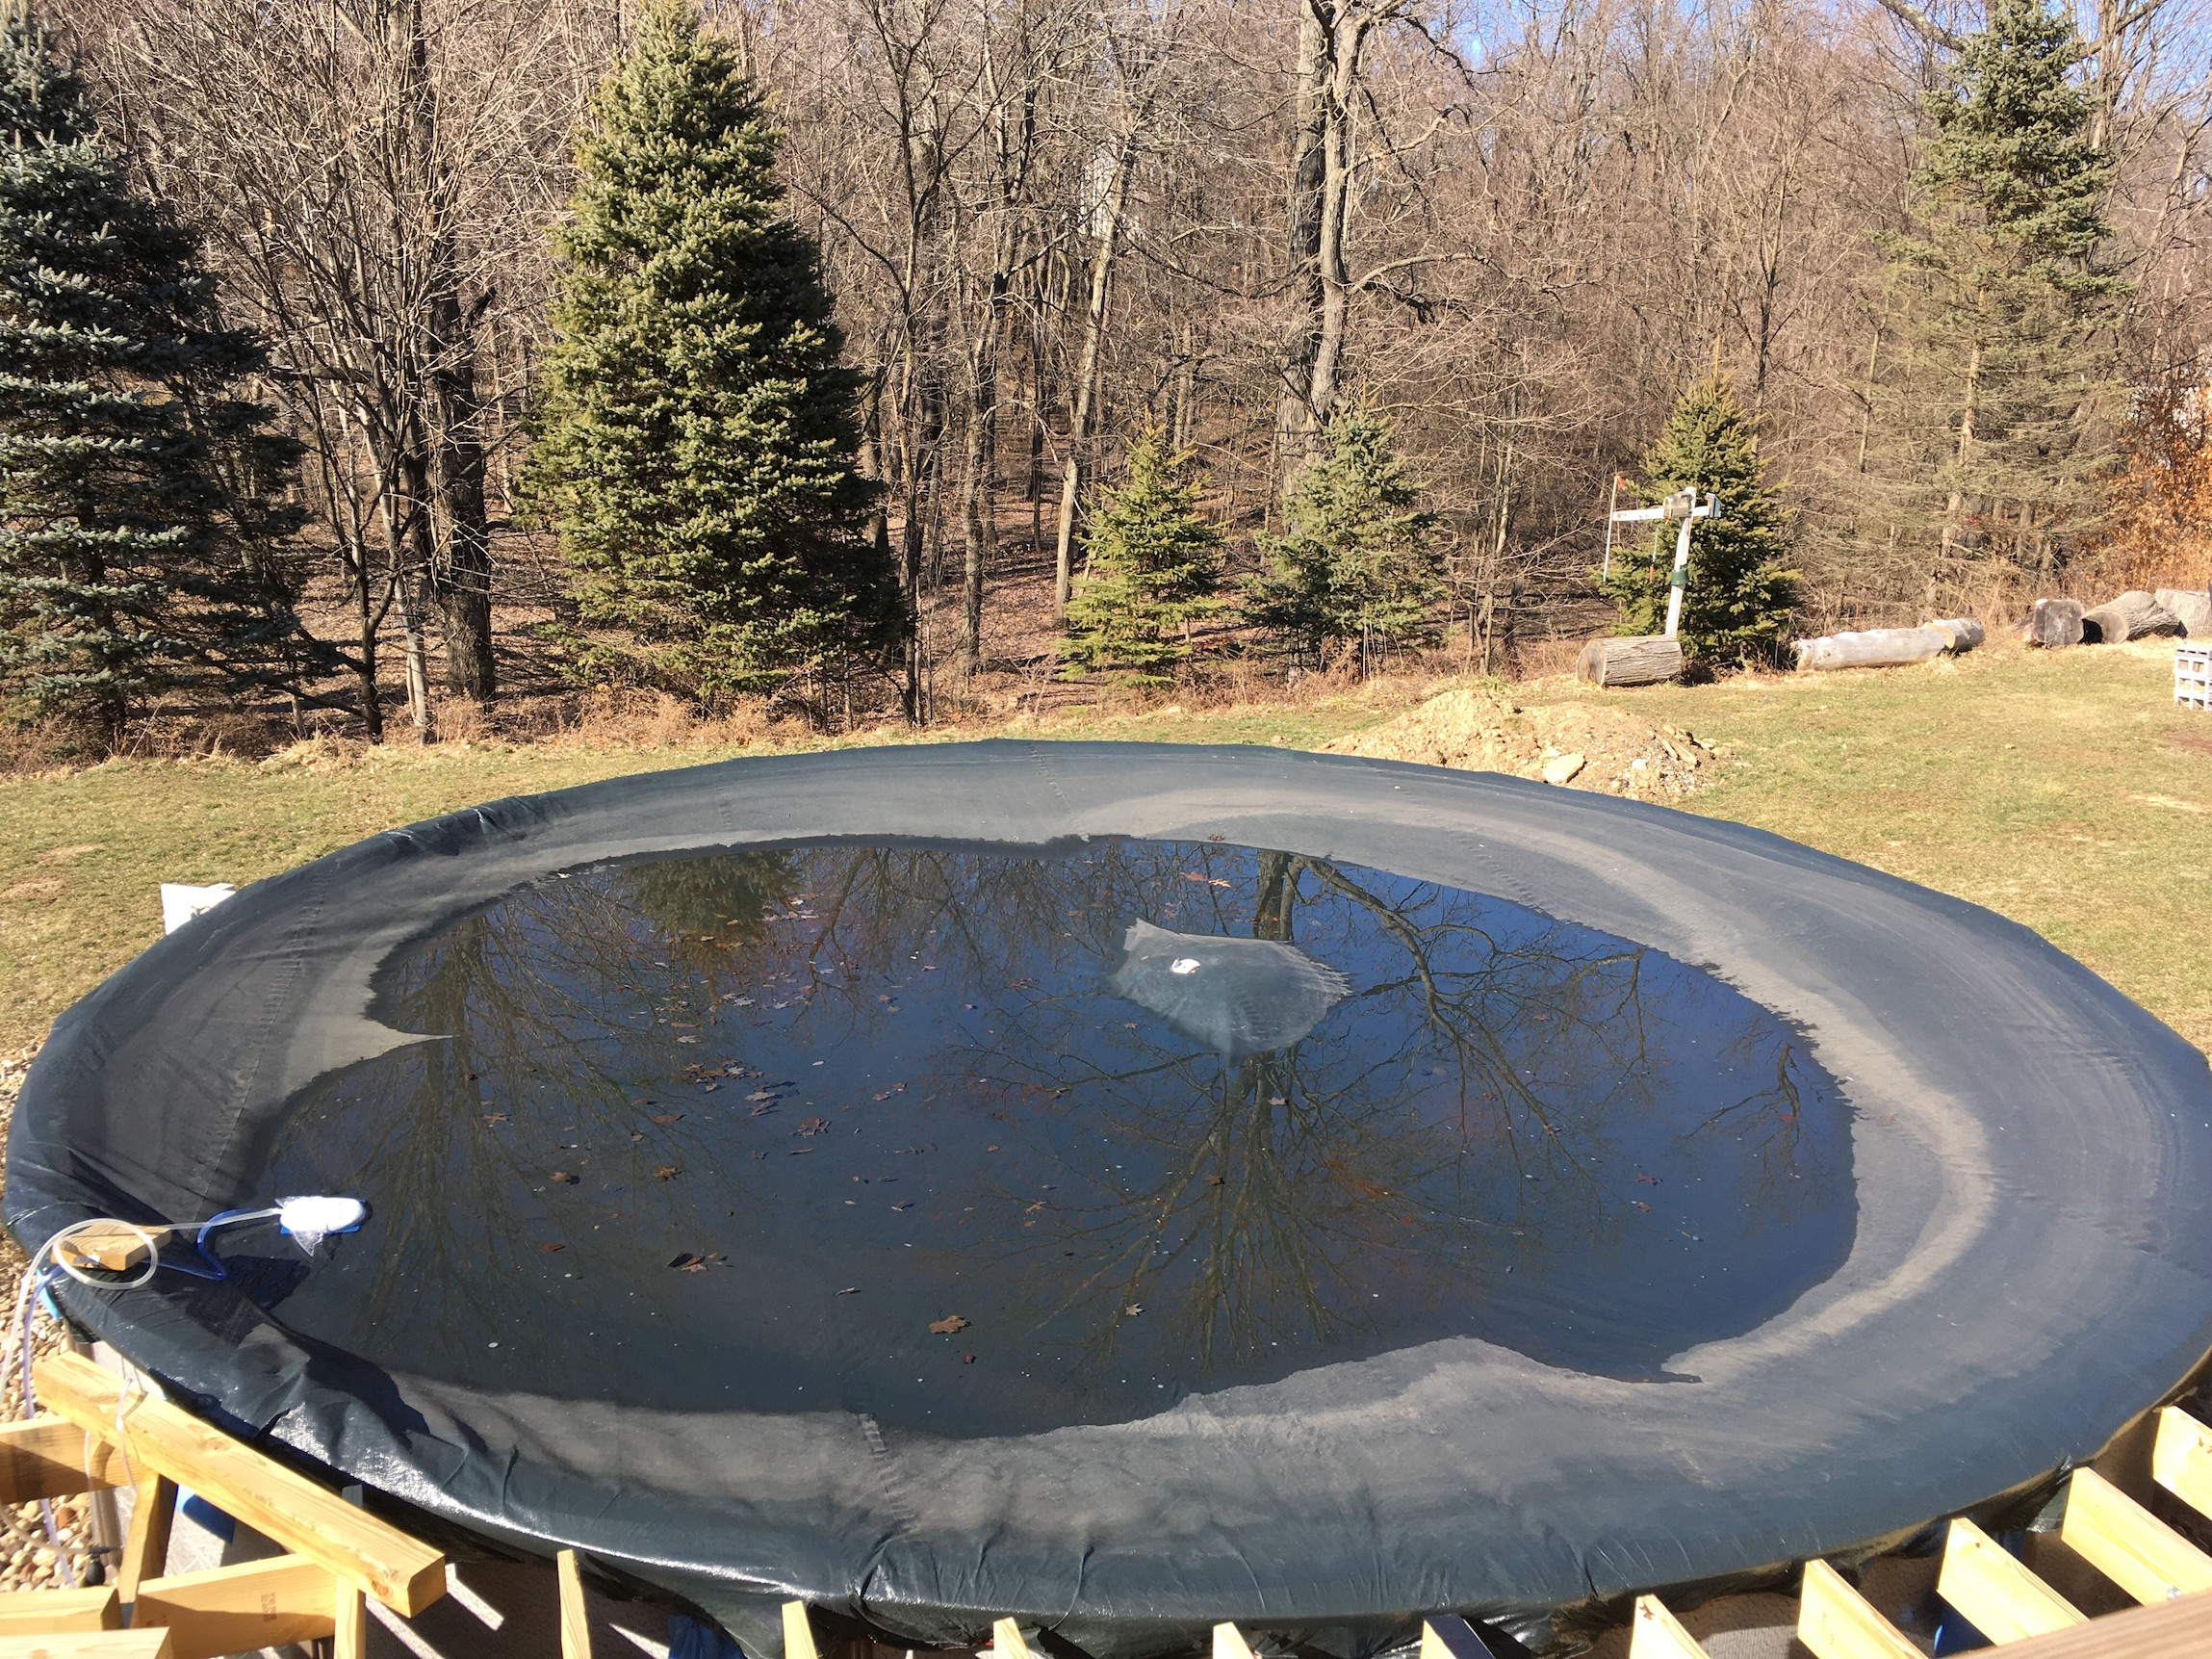 pool cover drained of water with shaker siphon pump